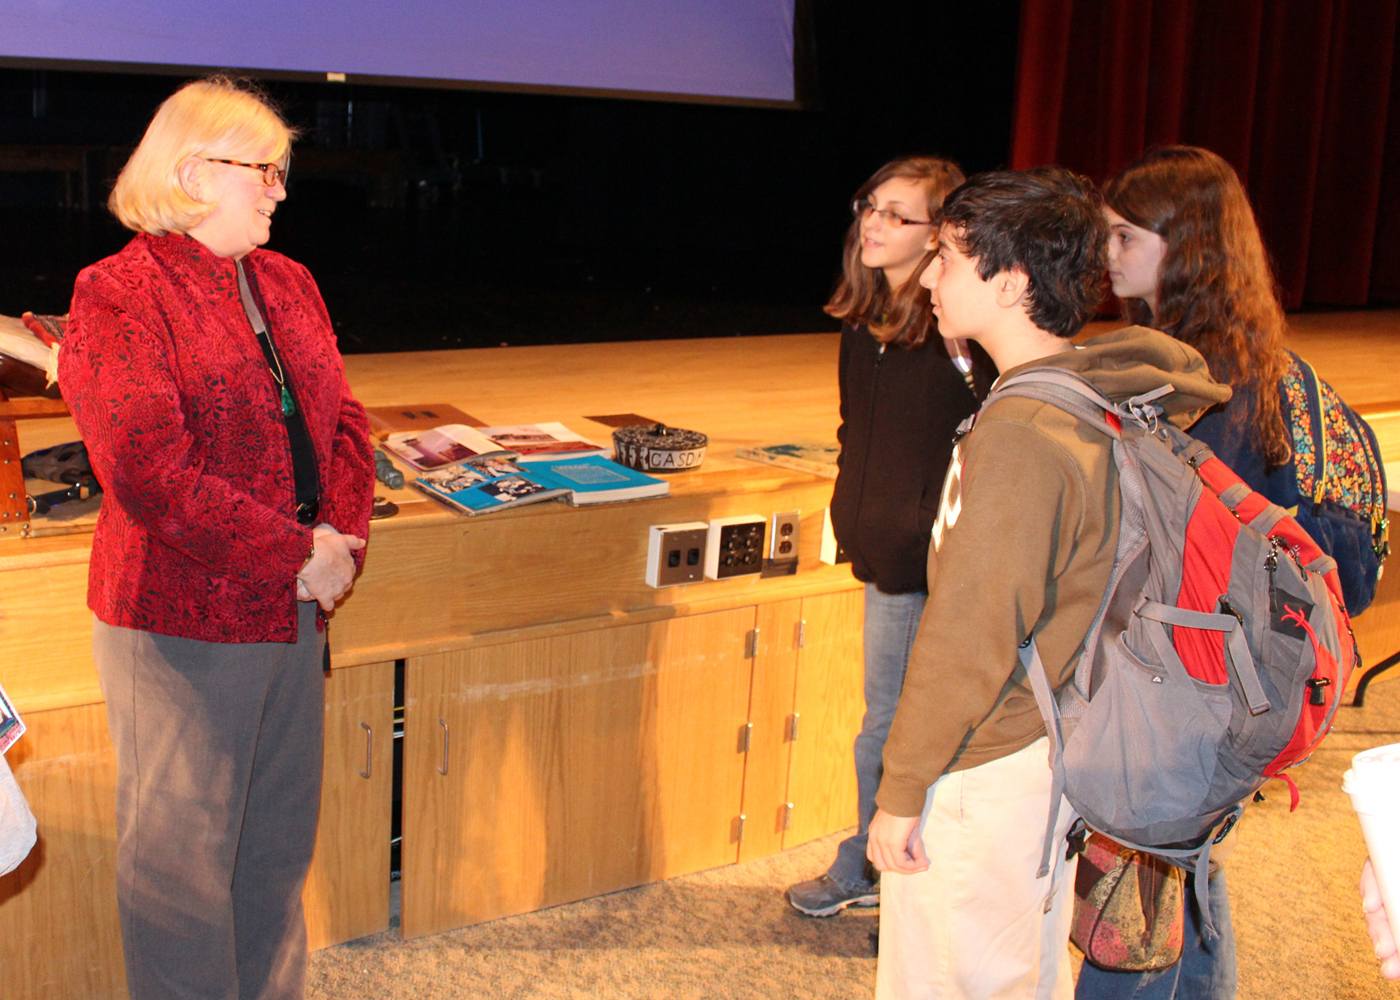 Madeleine Gasdik, who spent part of her childhood in Tehran, Iran as the daughter of a CIA agent, shares with Hilton High School freshmen some of the items she brought back with her.